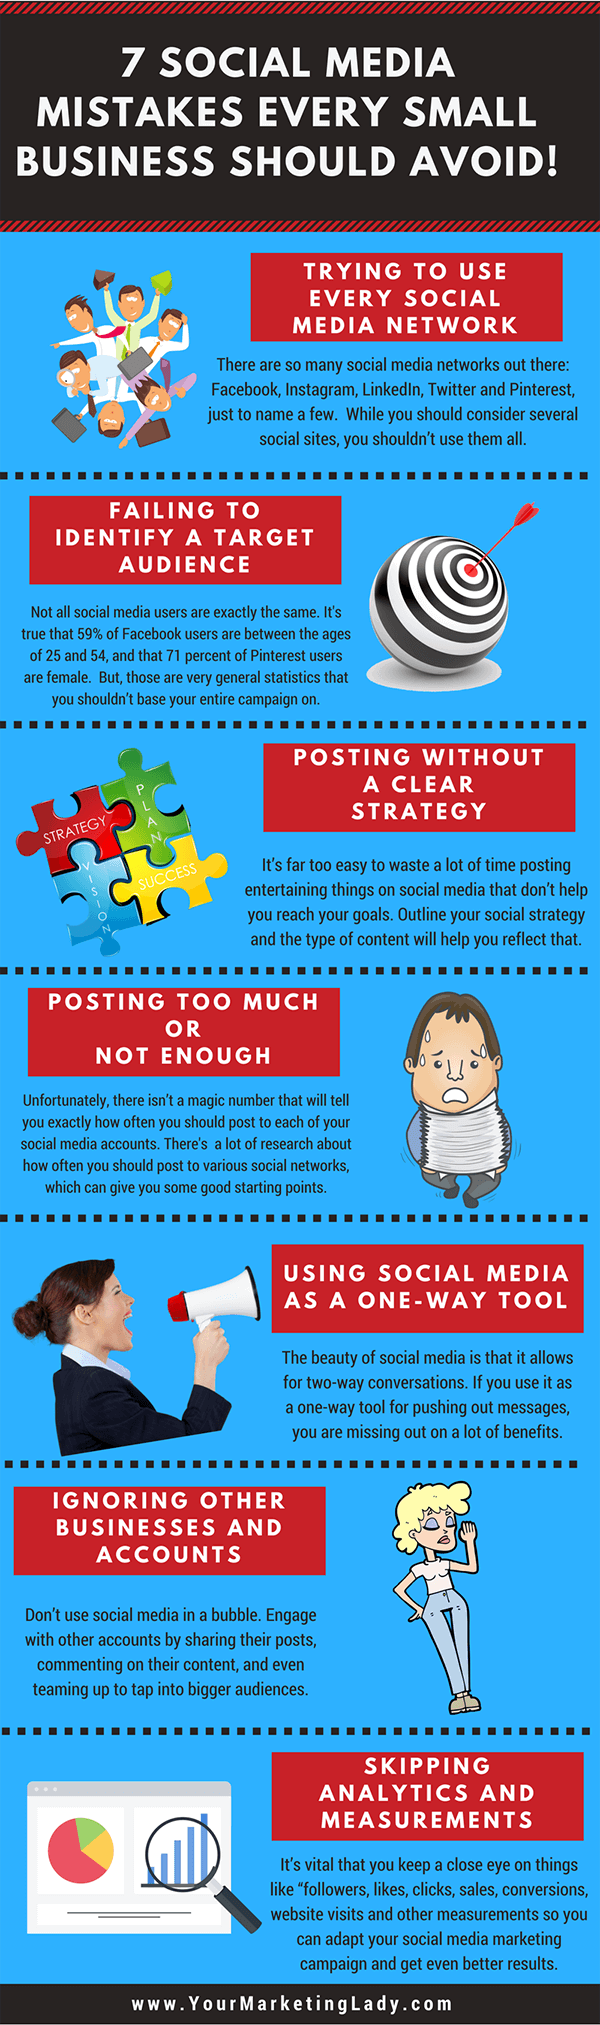 7 Social Media Mistakes Every Small Business Should Avoid